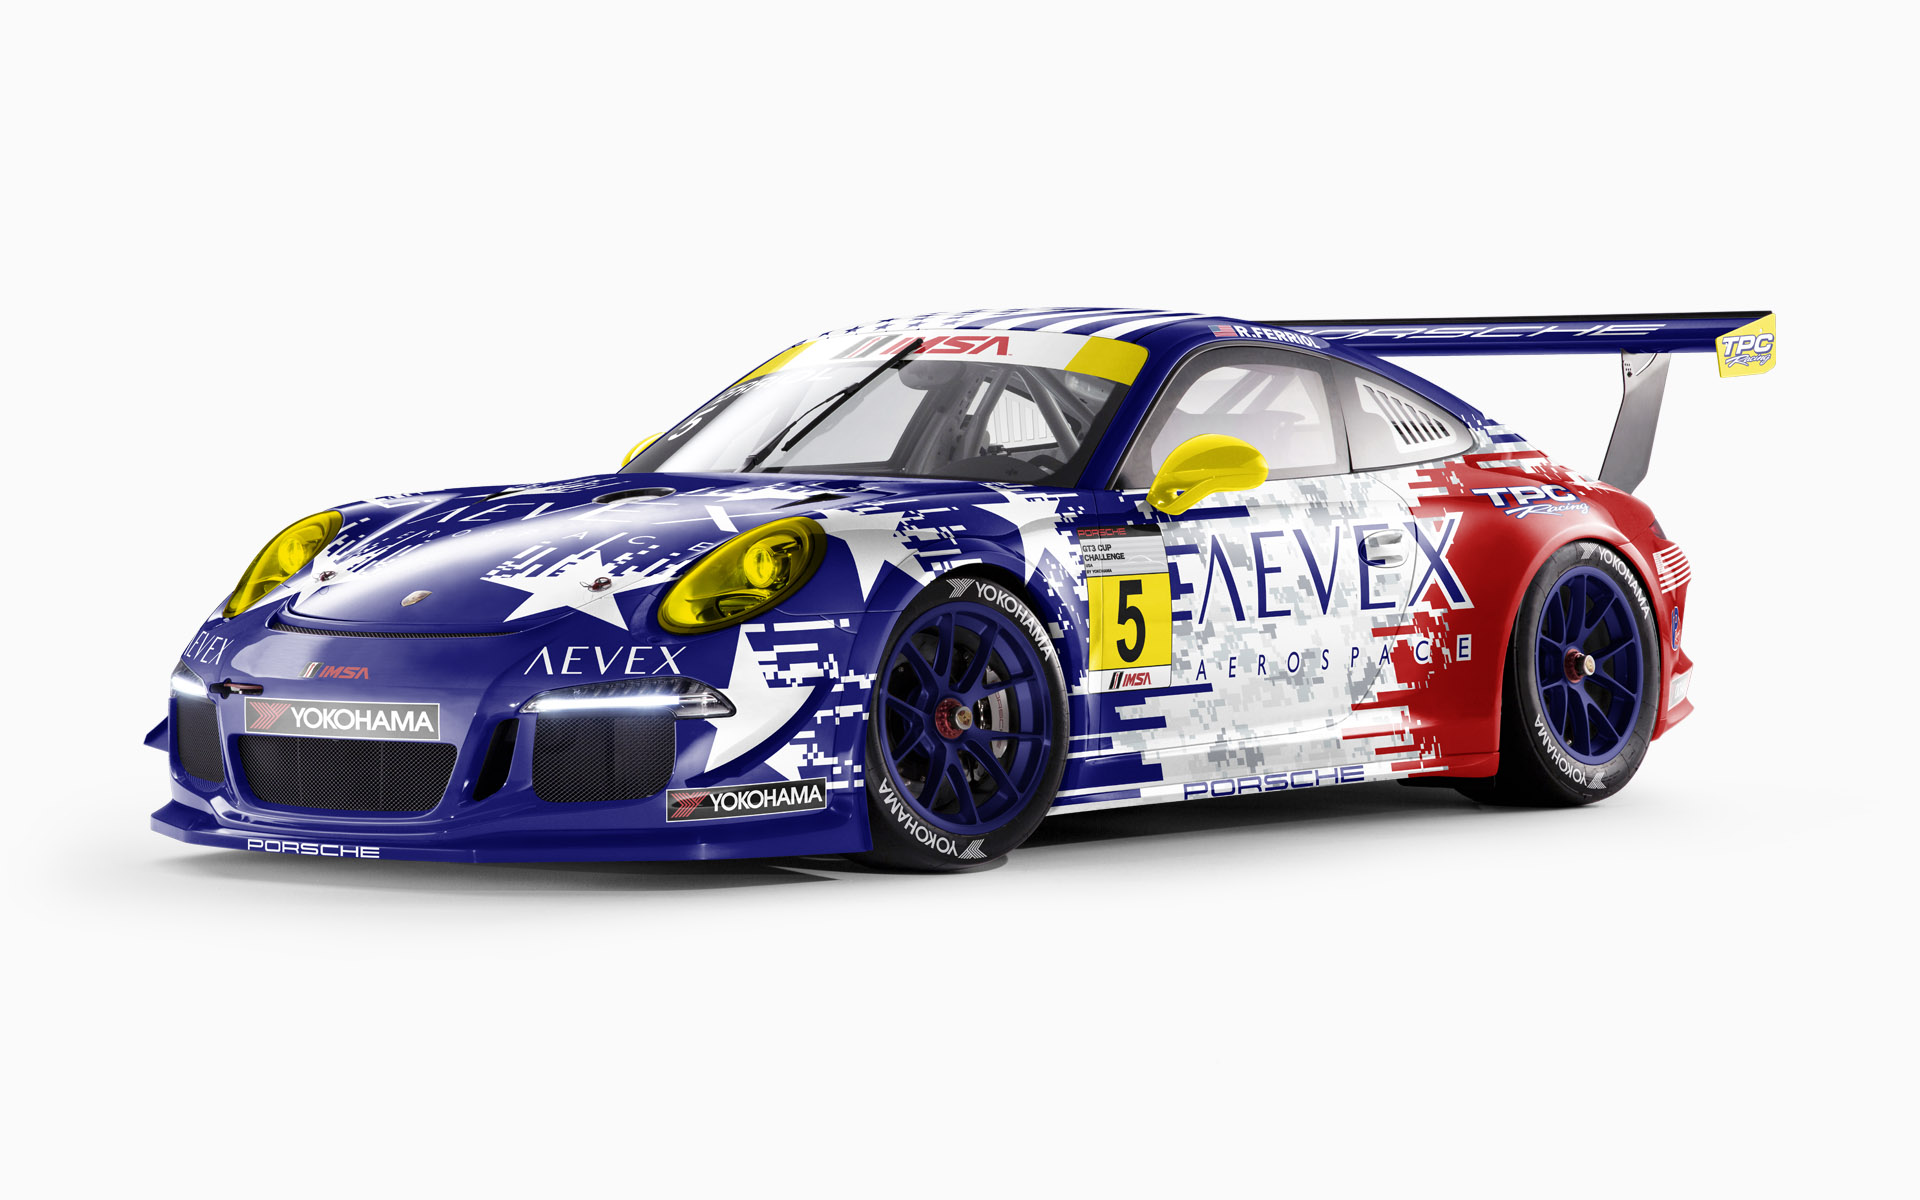 TPC Racing Aevex Aerospace July 4th Porsche 911 GT3 Cup Livery Visualization